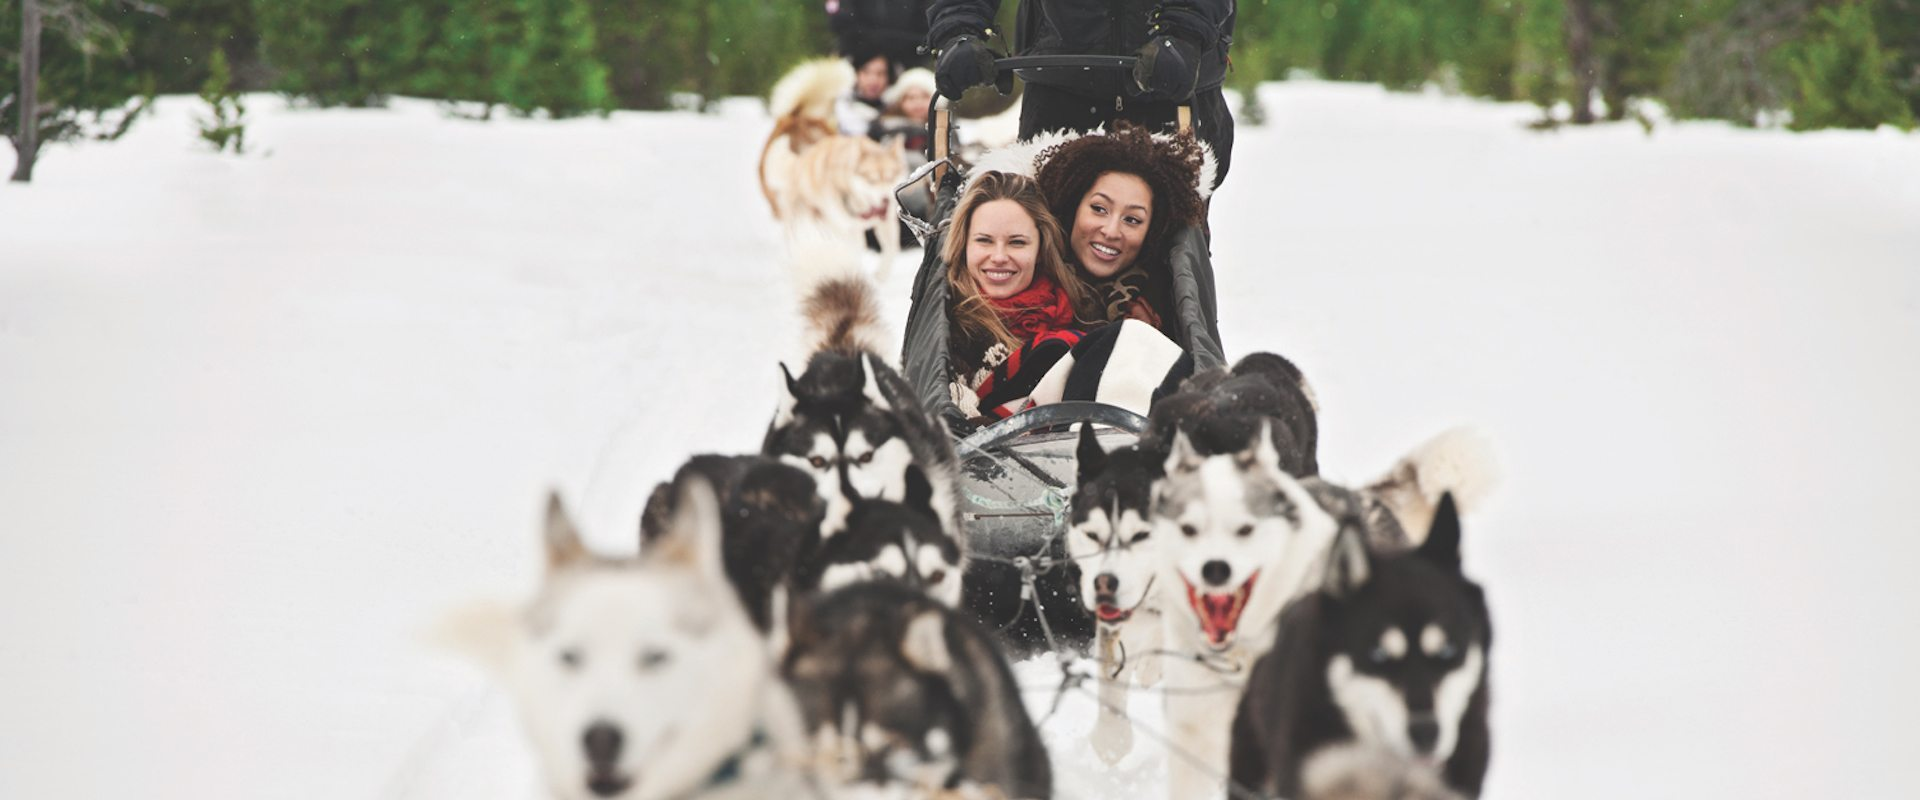 Dogsledding – Powder Hound 2 Hrs